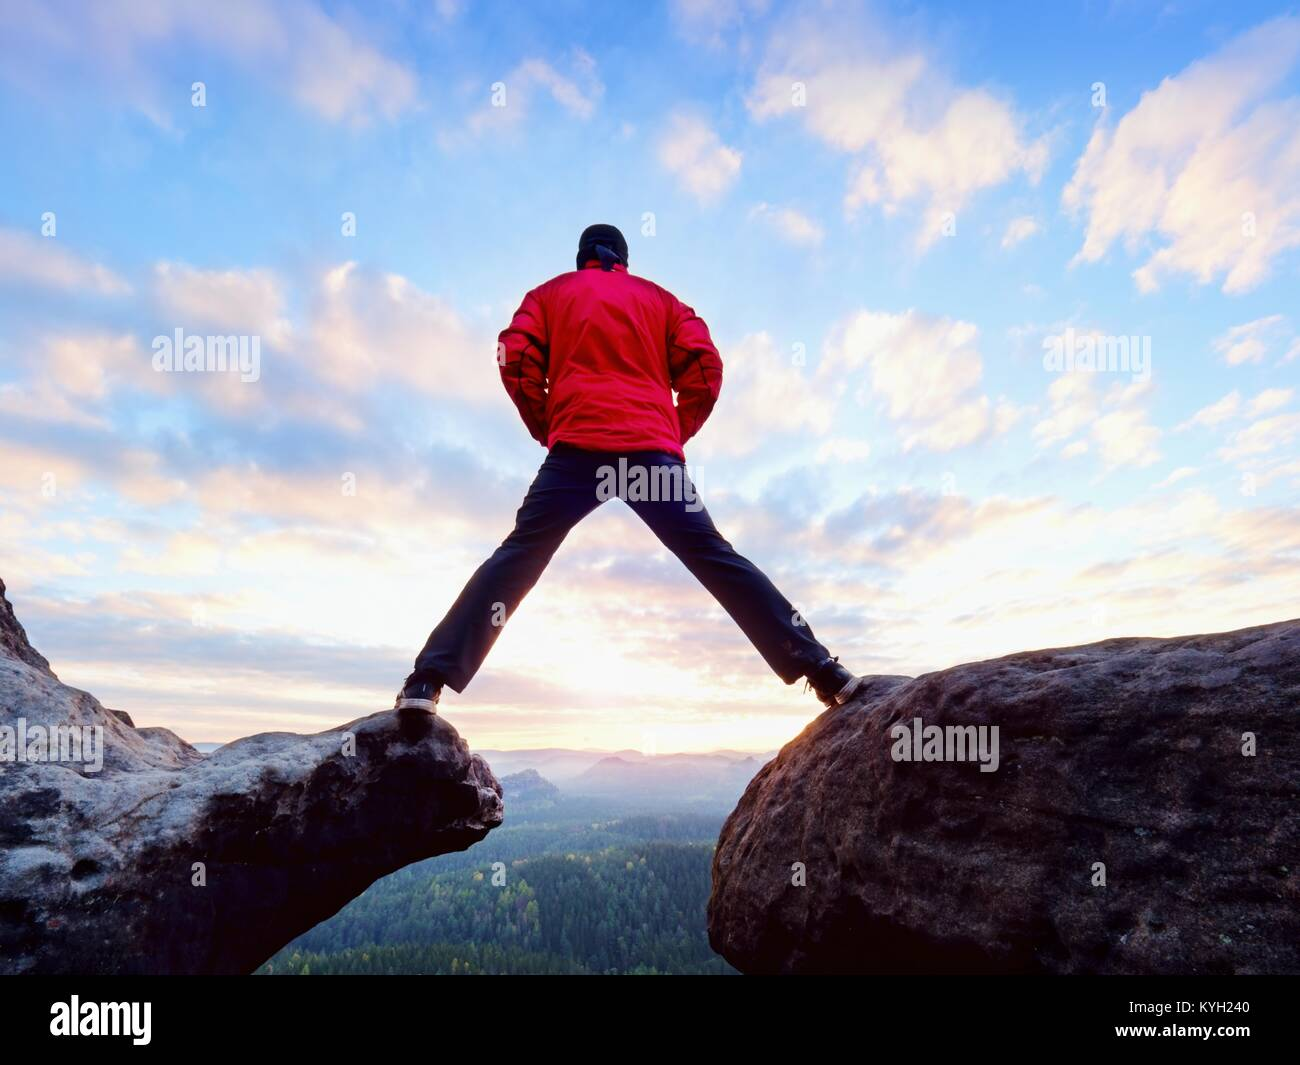 Man jumping from the mountain edge.  Man jumping off a cliff without rope. Risky moment. Rough rocky ground. - Stock Image